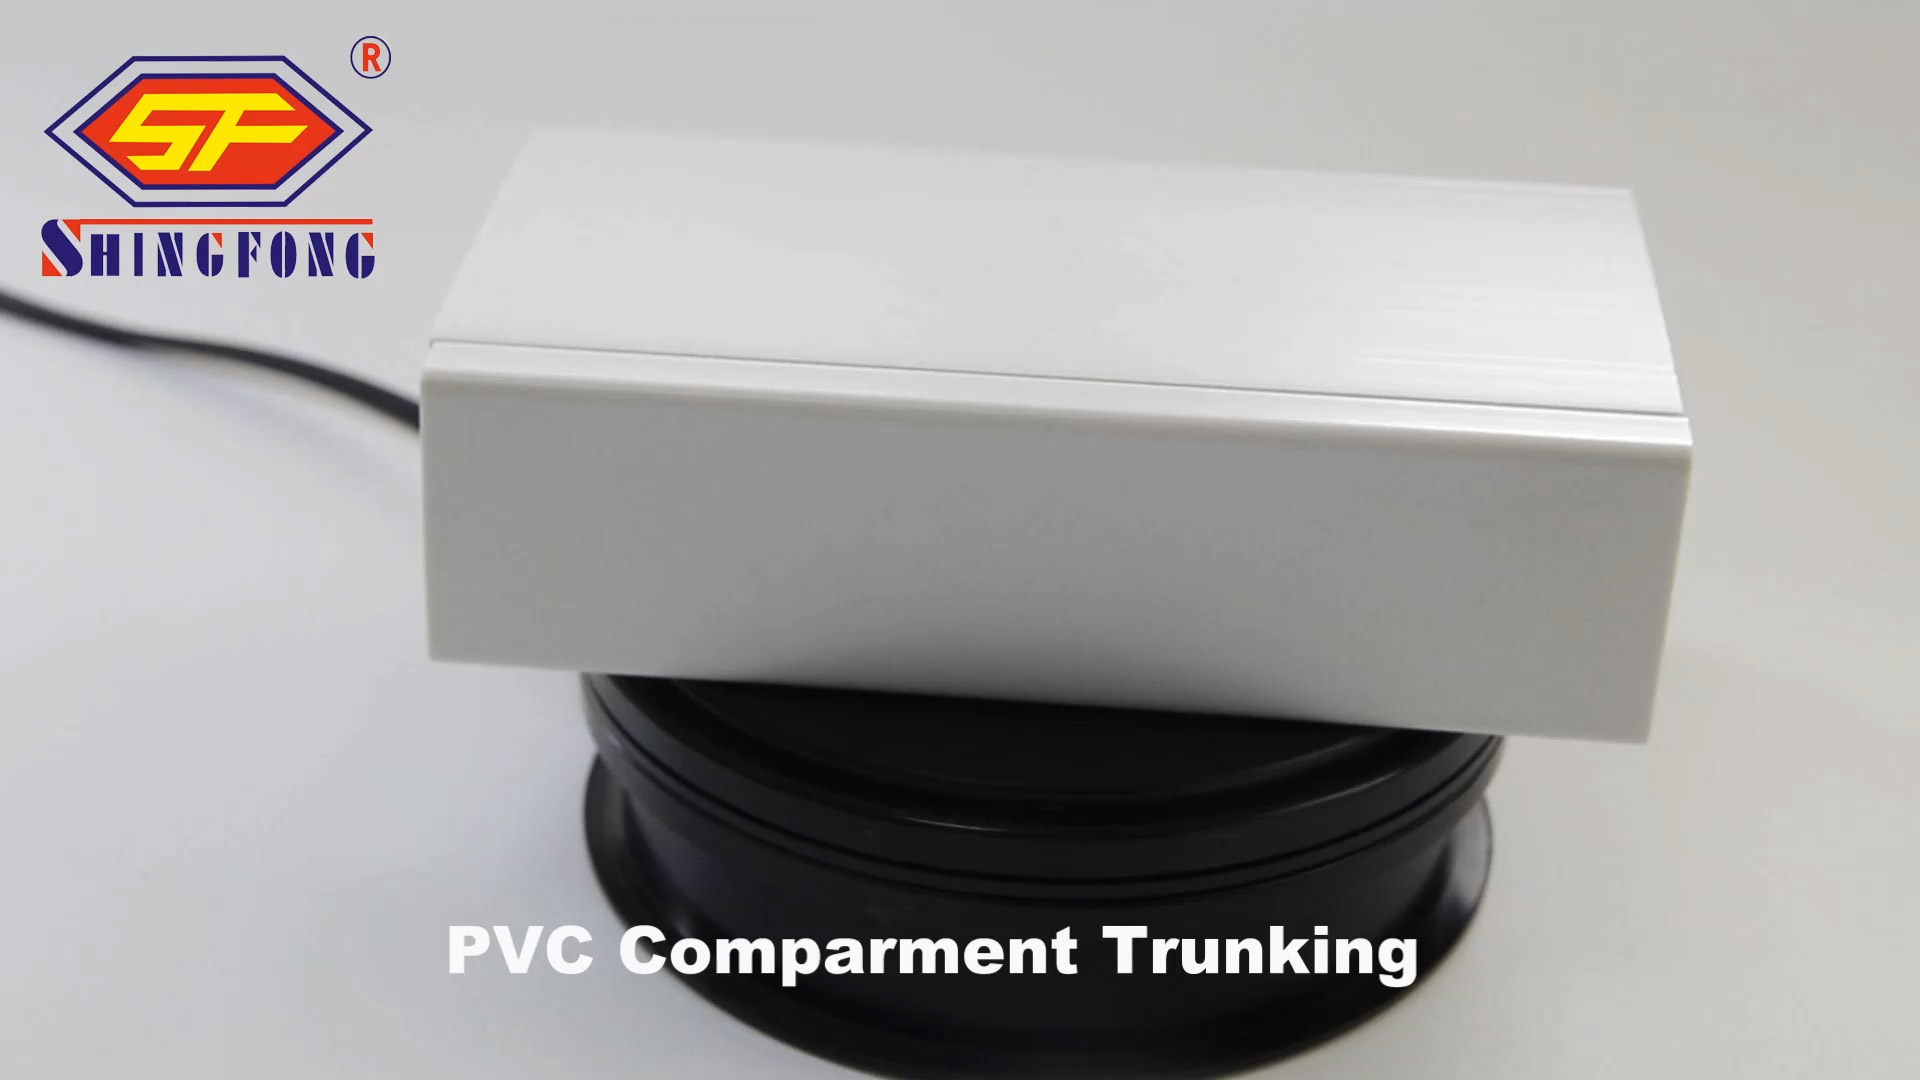 Intro to Customized PVC Comparment Trunking manufacturers From China Shingfong